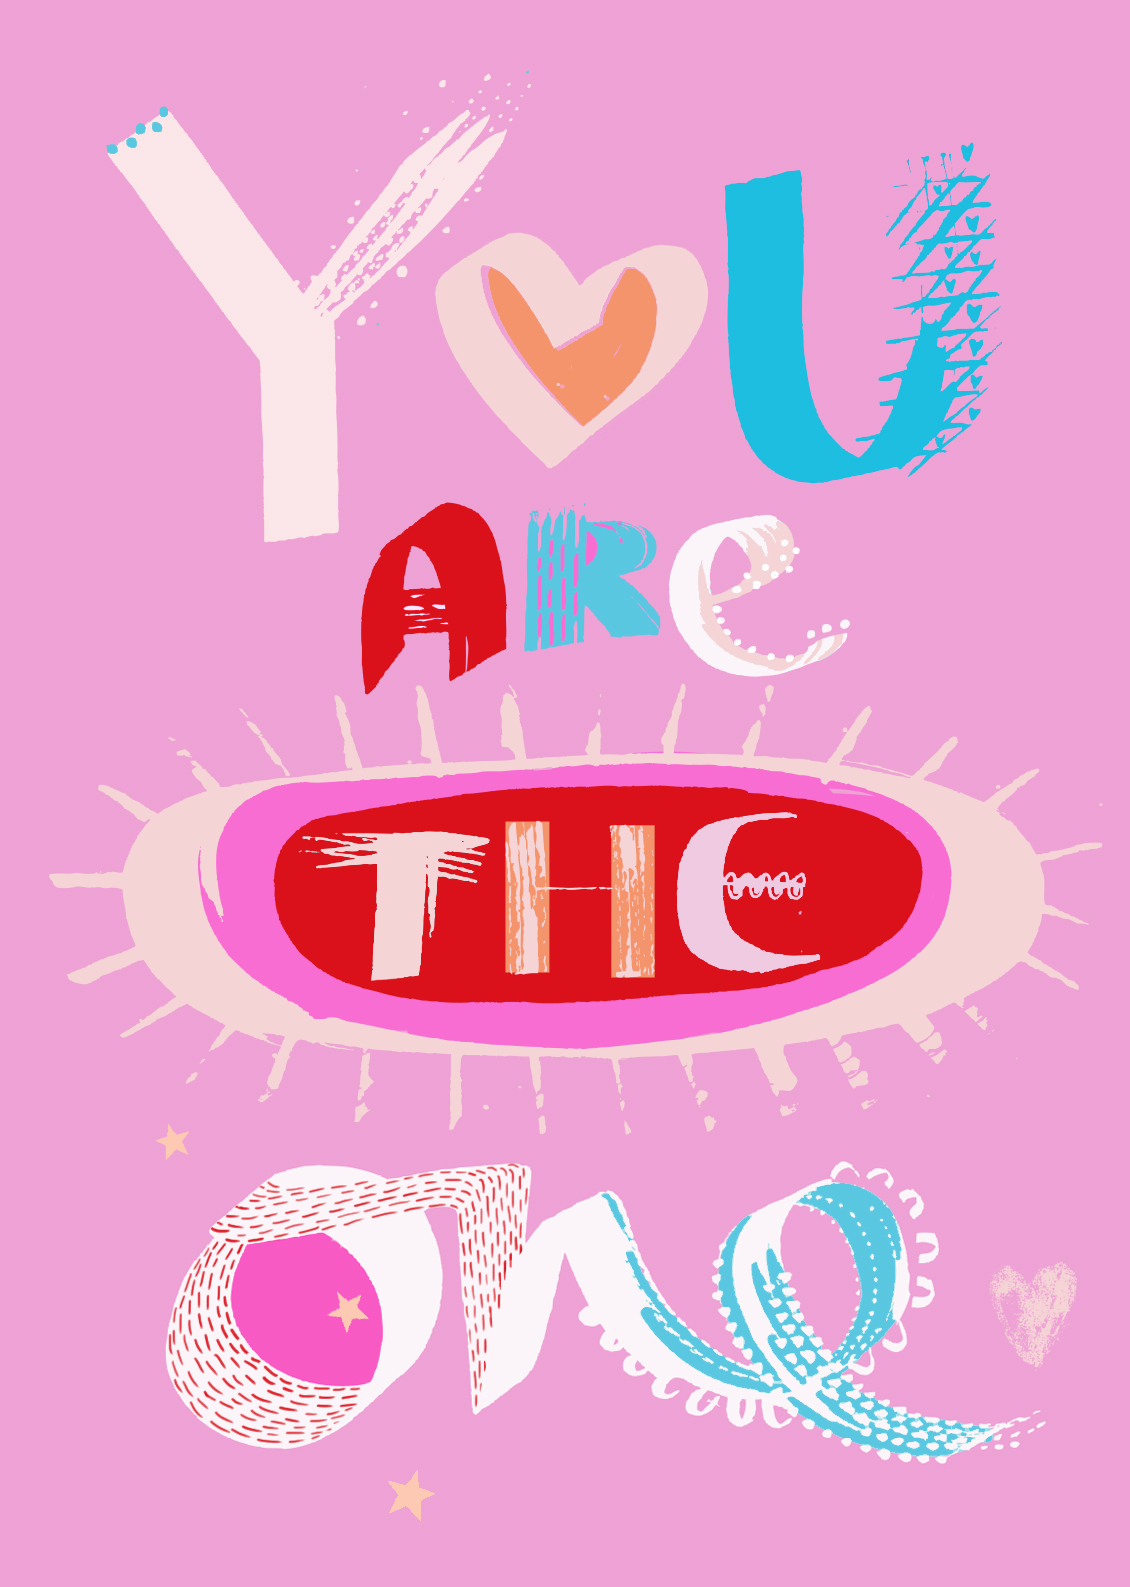 you-are-the-one-a-valentine-carrd-by-gabriella-buckingham.jpg